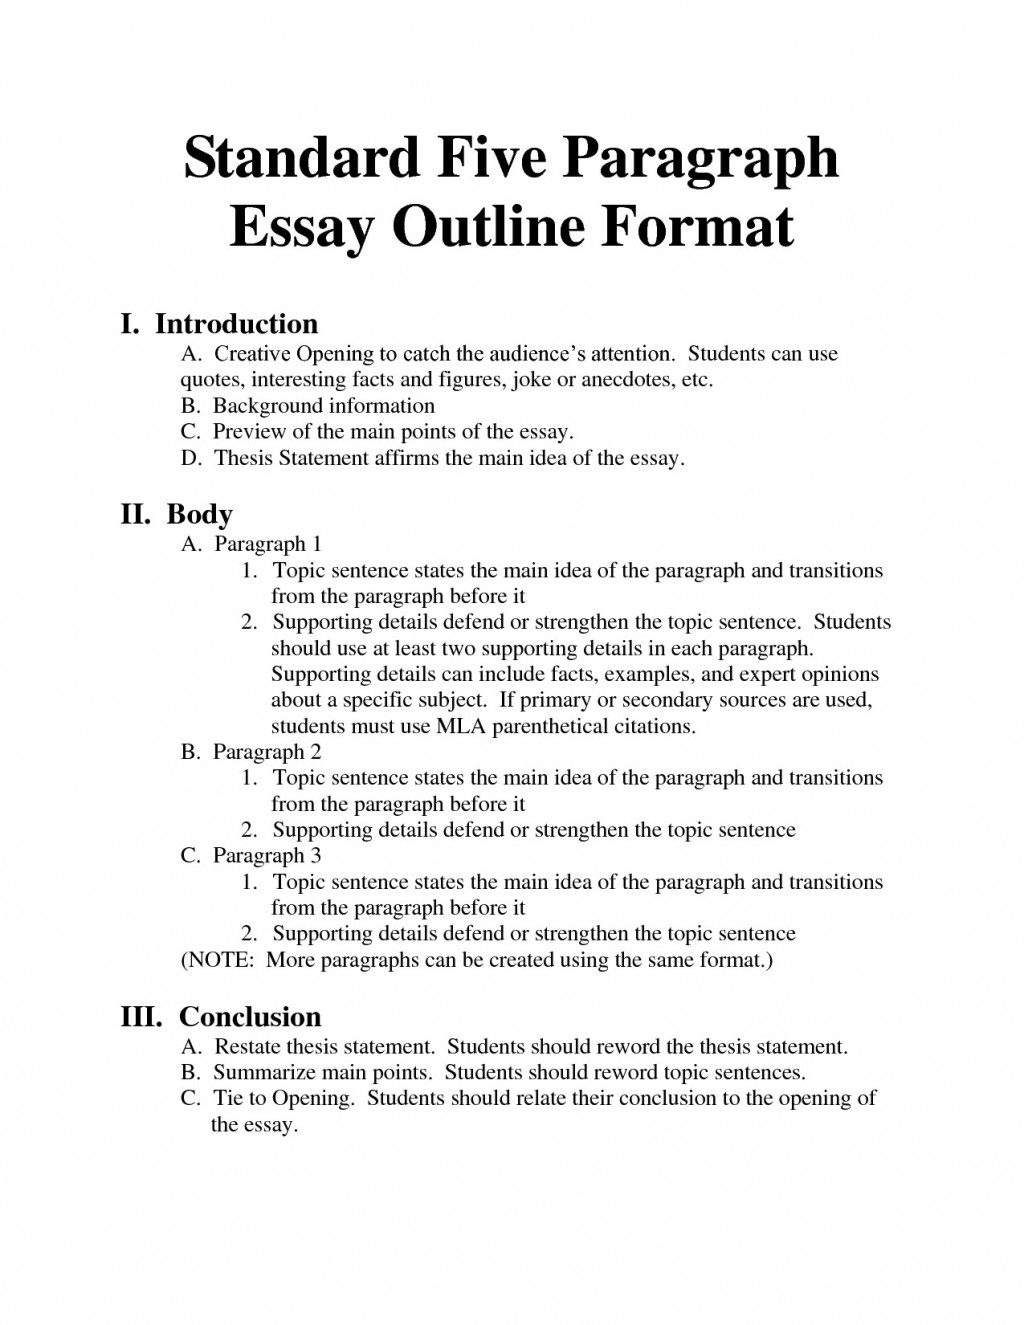 017 Personal Essay Format Writing Types Of Standard Bing Essays Homeschool Formidable Narrative For Scholarships Samples Graduate School Large